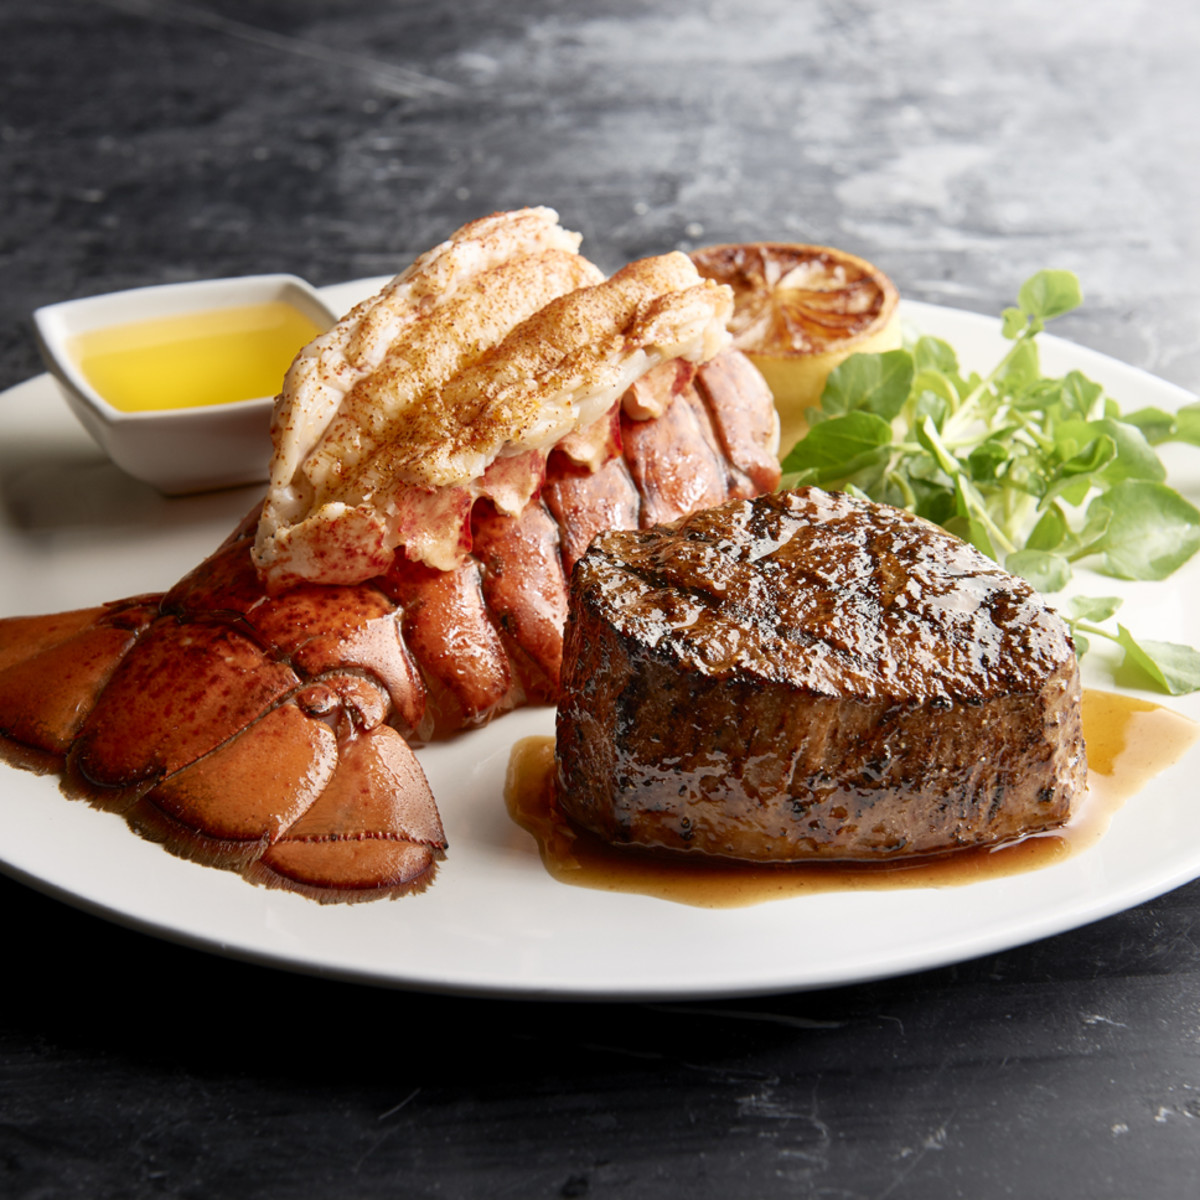 Morton's steak and lobster tail